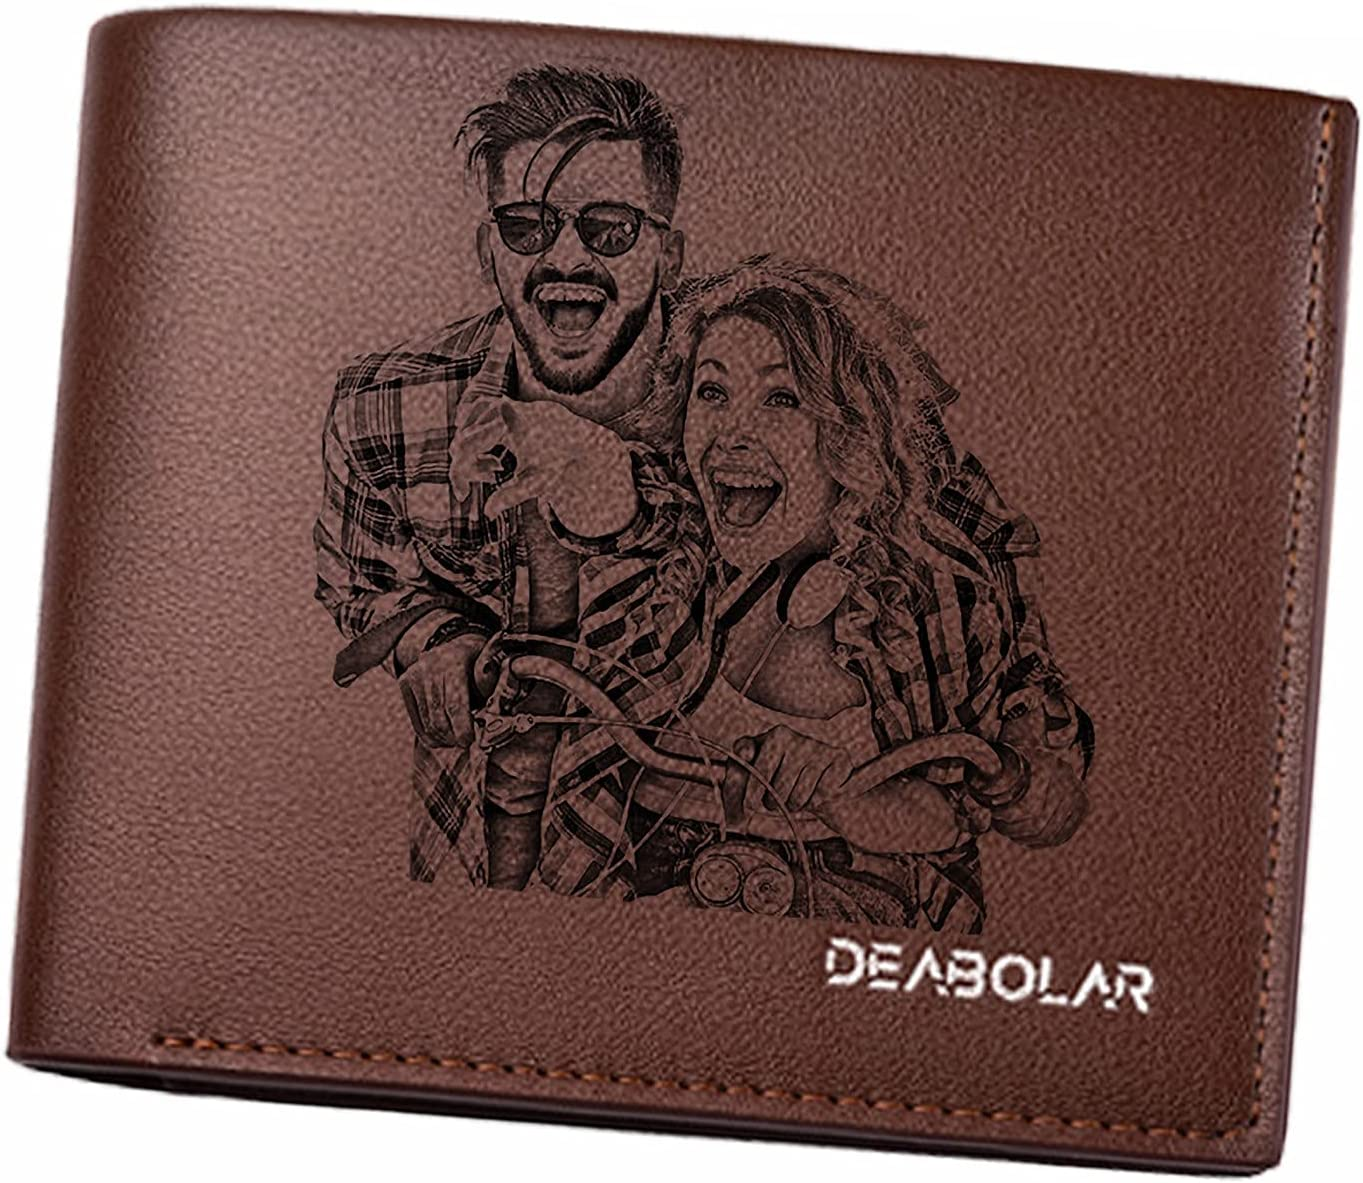 Custom Engraved Wallets Personalized Photo Leather Wallet Commemorative wallet for father, husband, son, friend, best man, BF